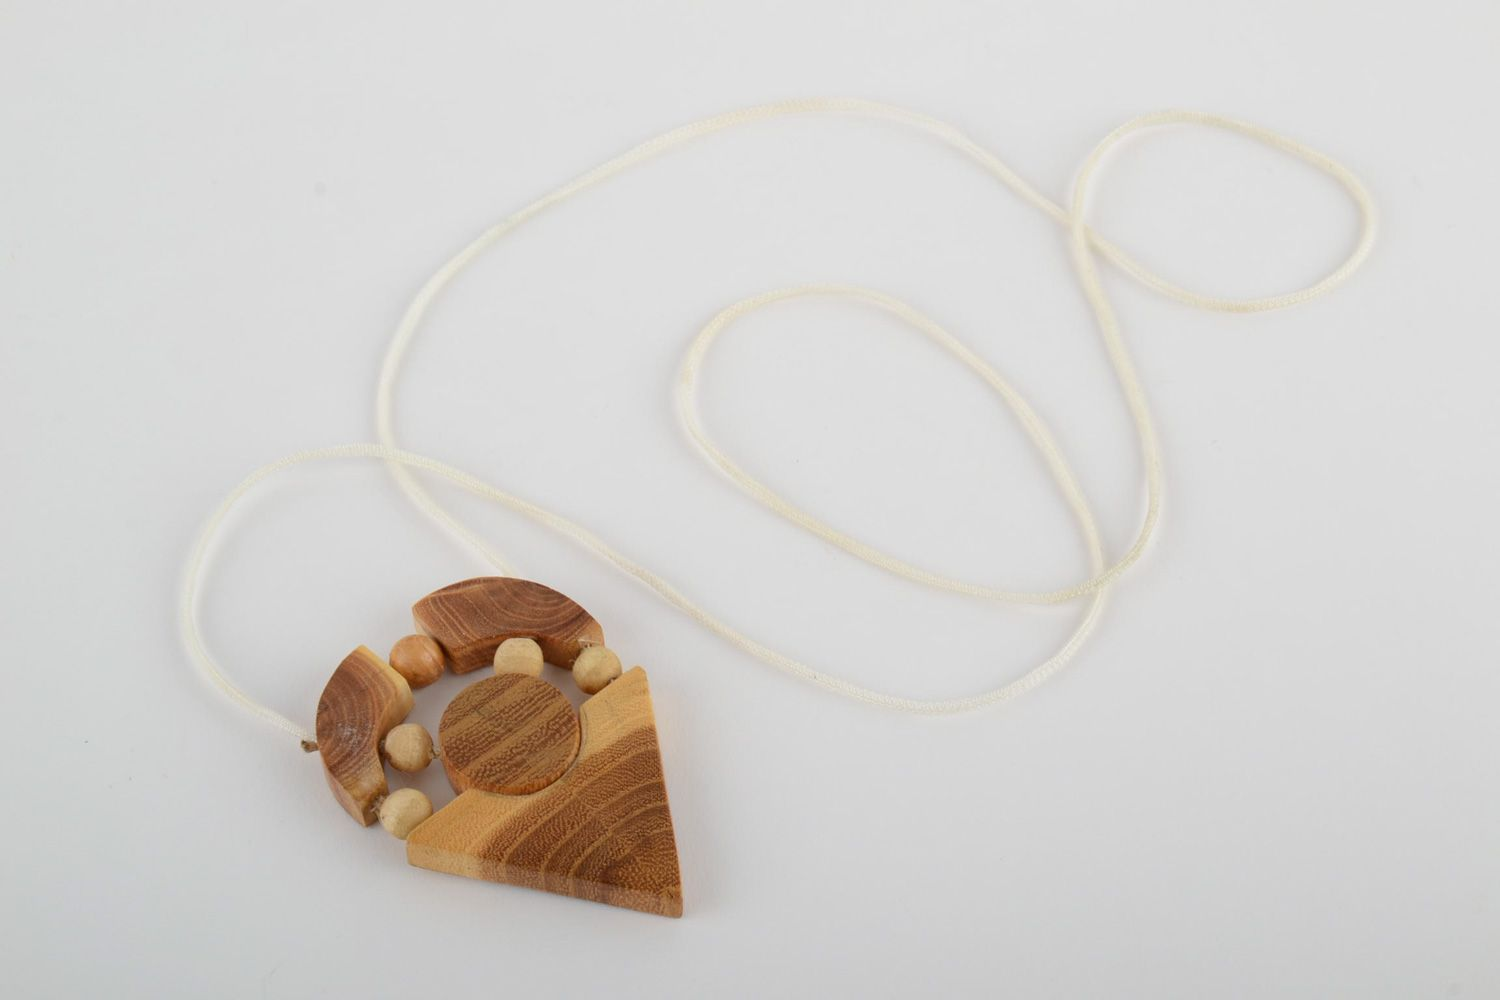 Handmade geometric neck pendant carved of wood and varnished on cord for ladies photo 4